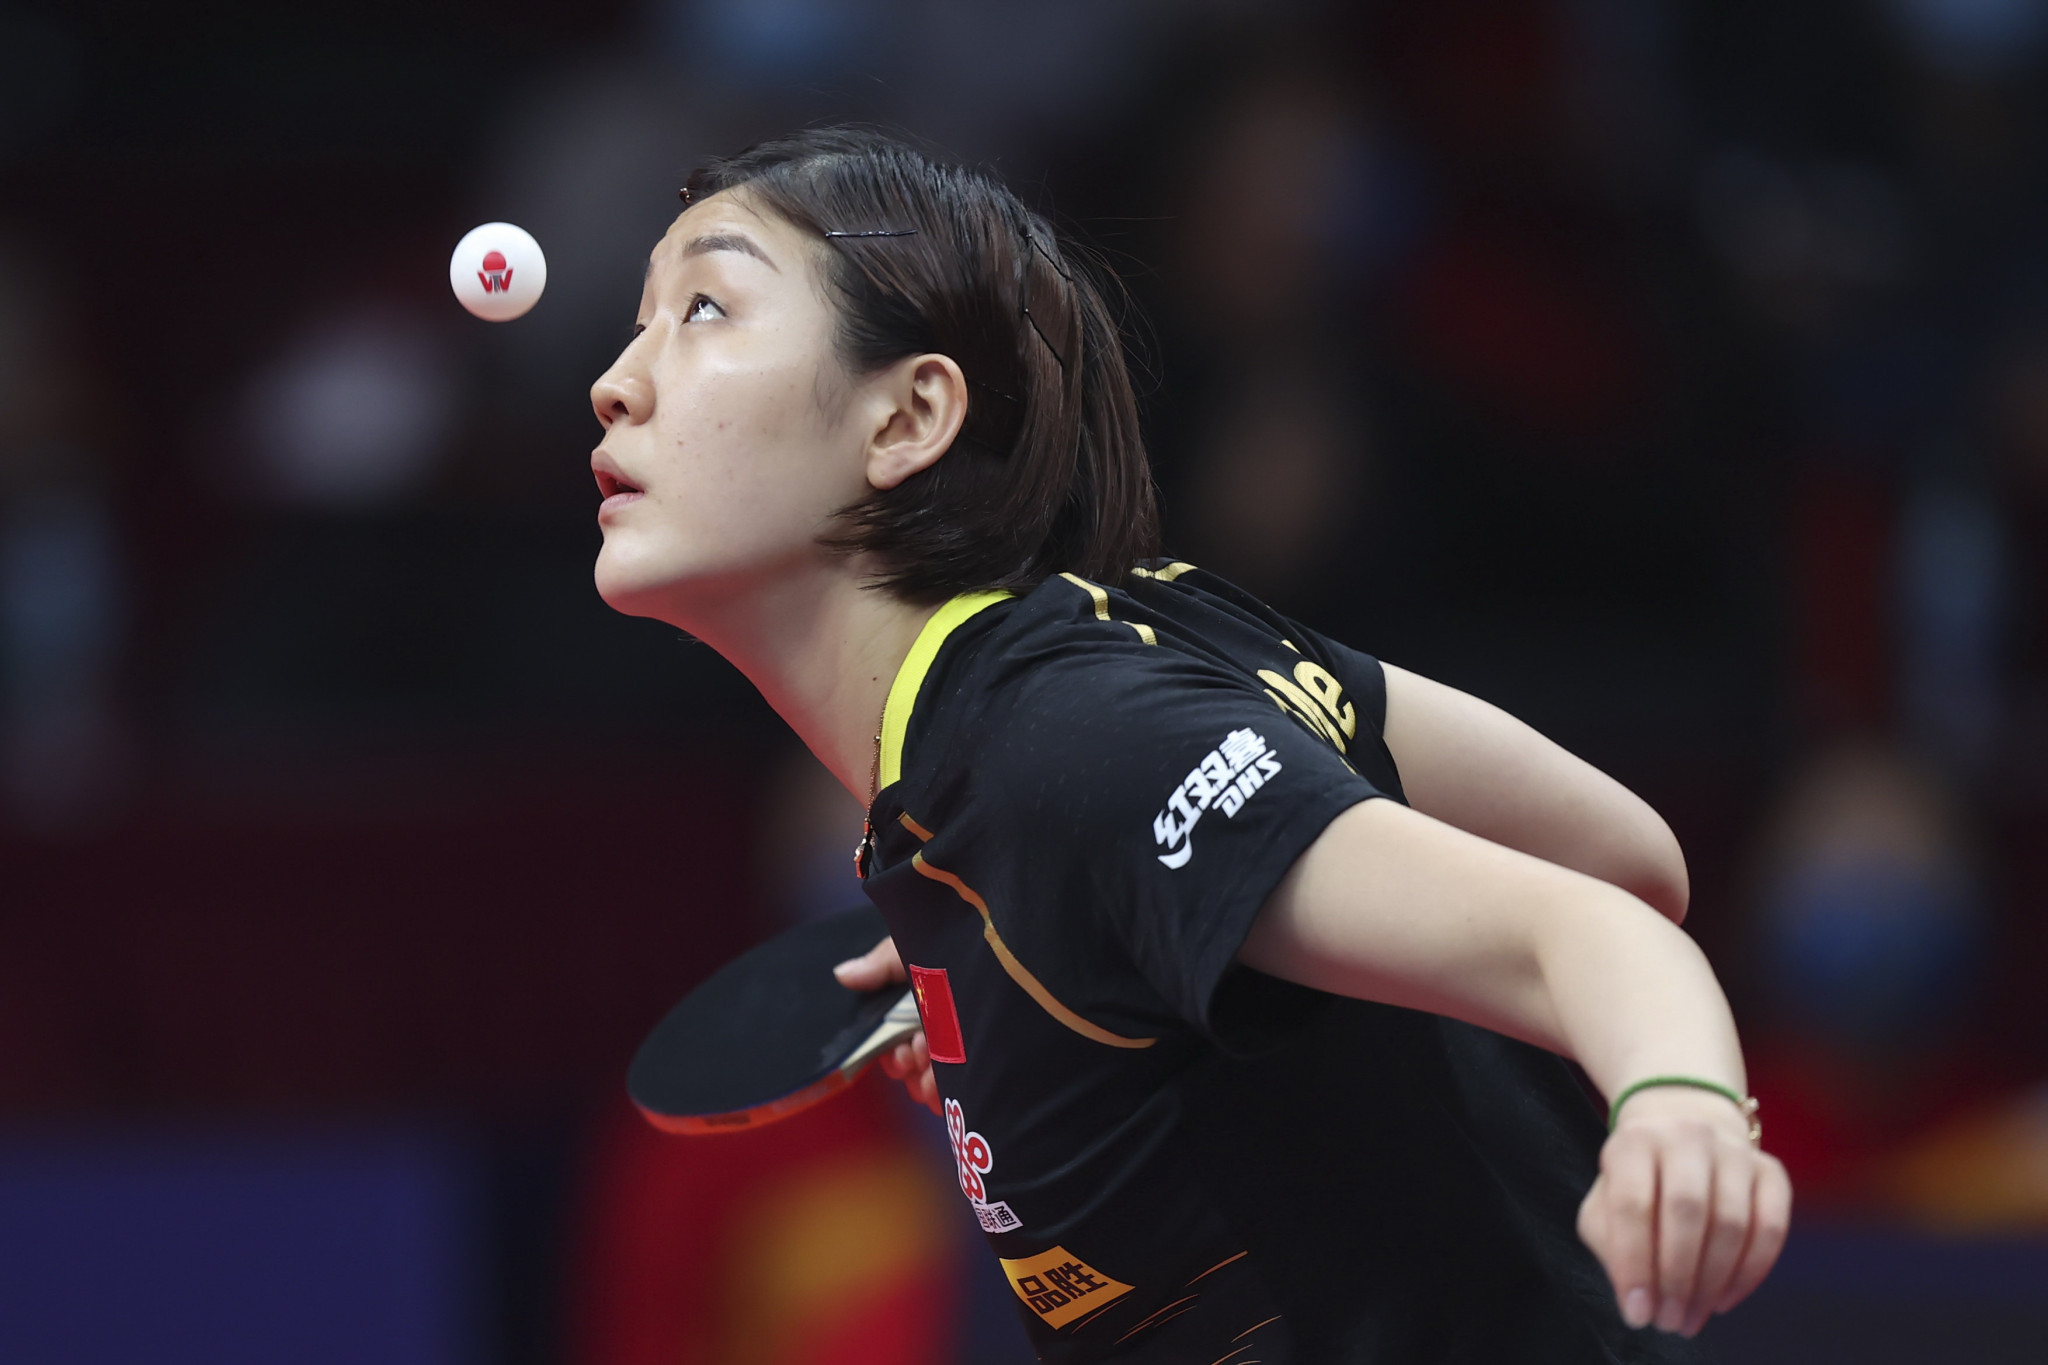 ITTF confirm Annual General Meeting to be held on November 24